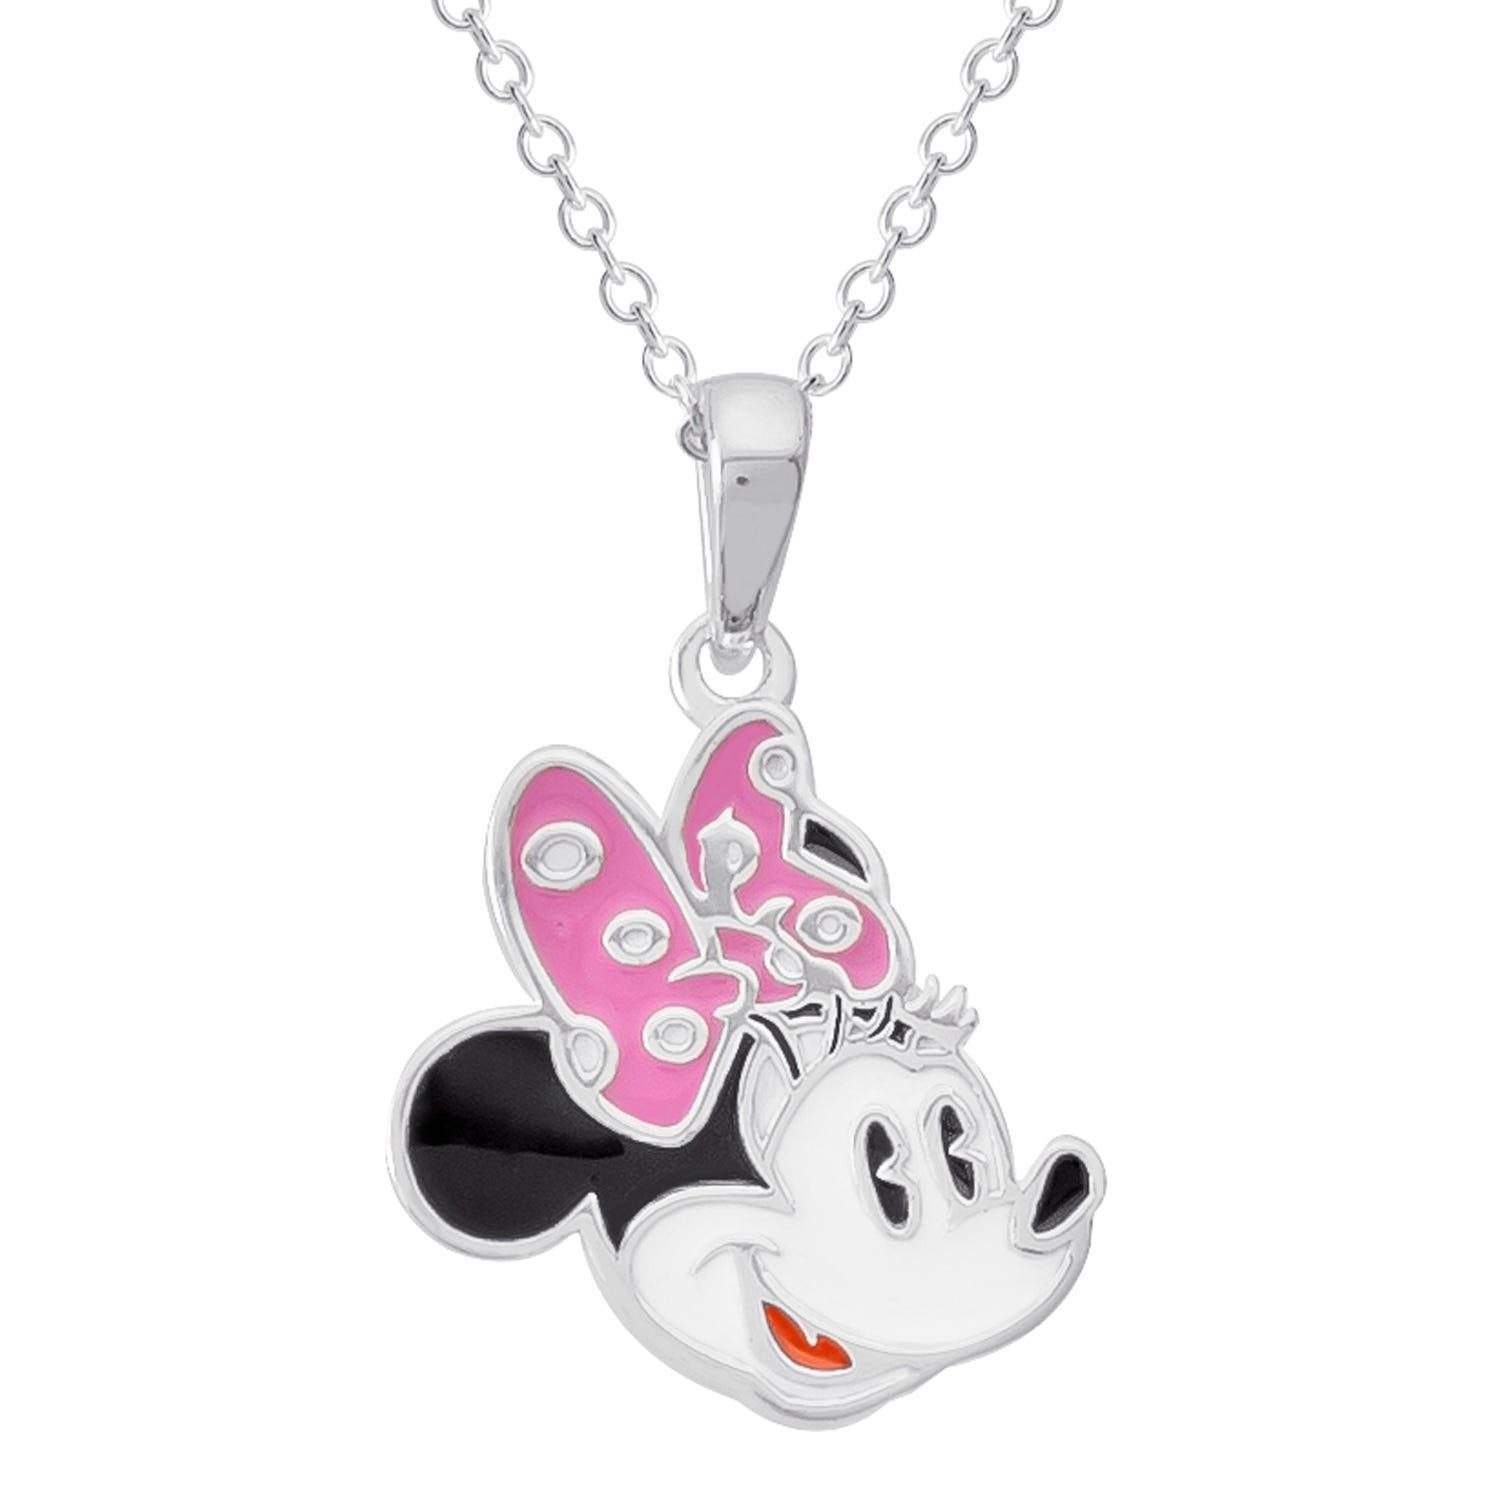 DISNEY© Minnie Mouse Pendant in Sterling Silver